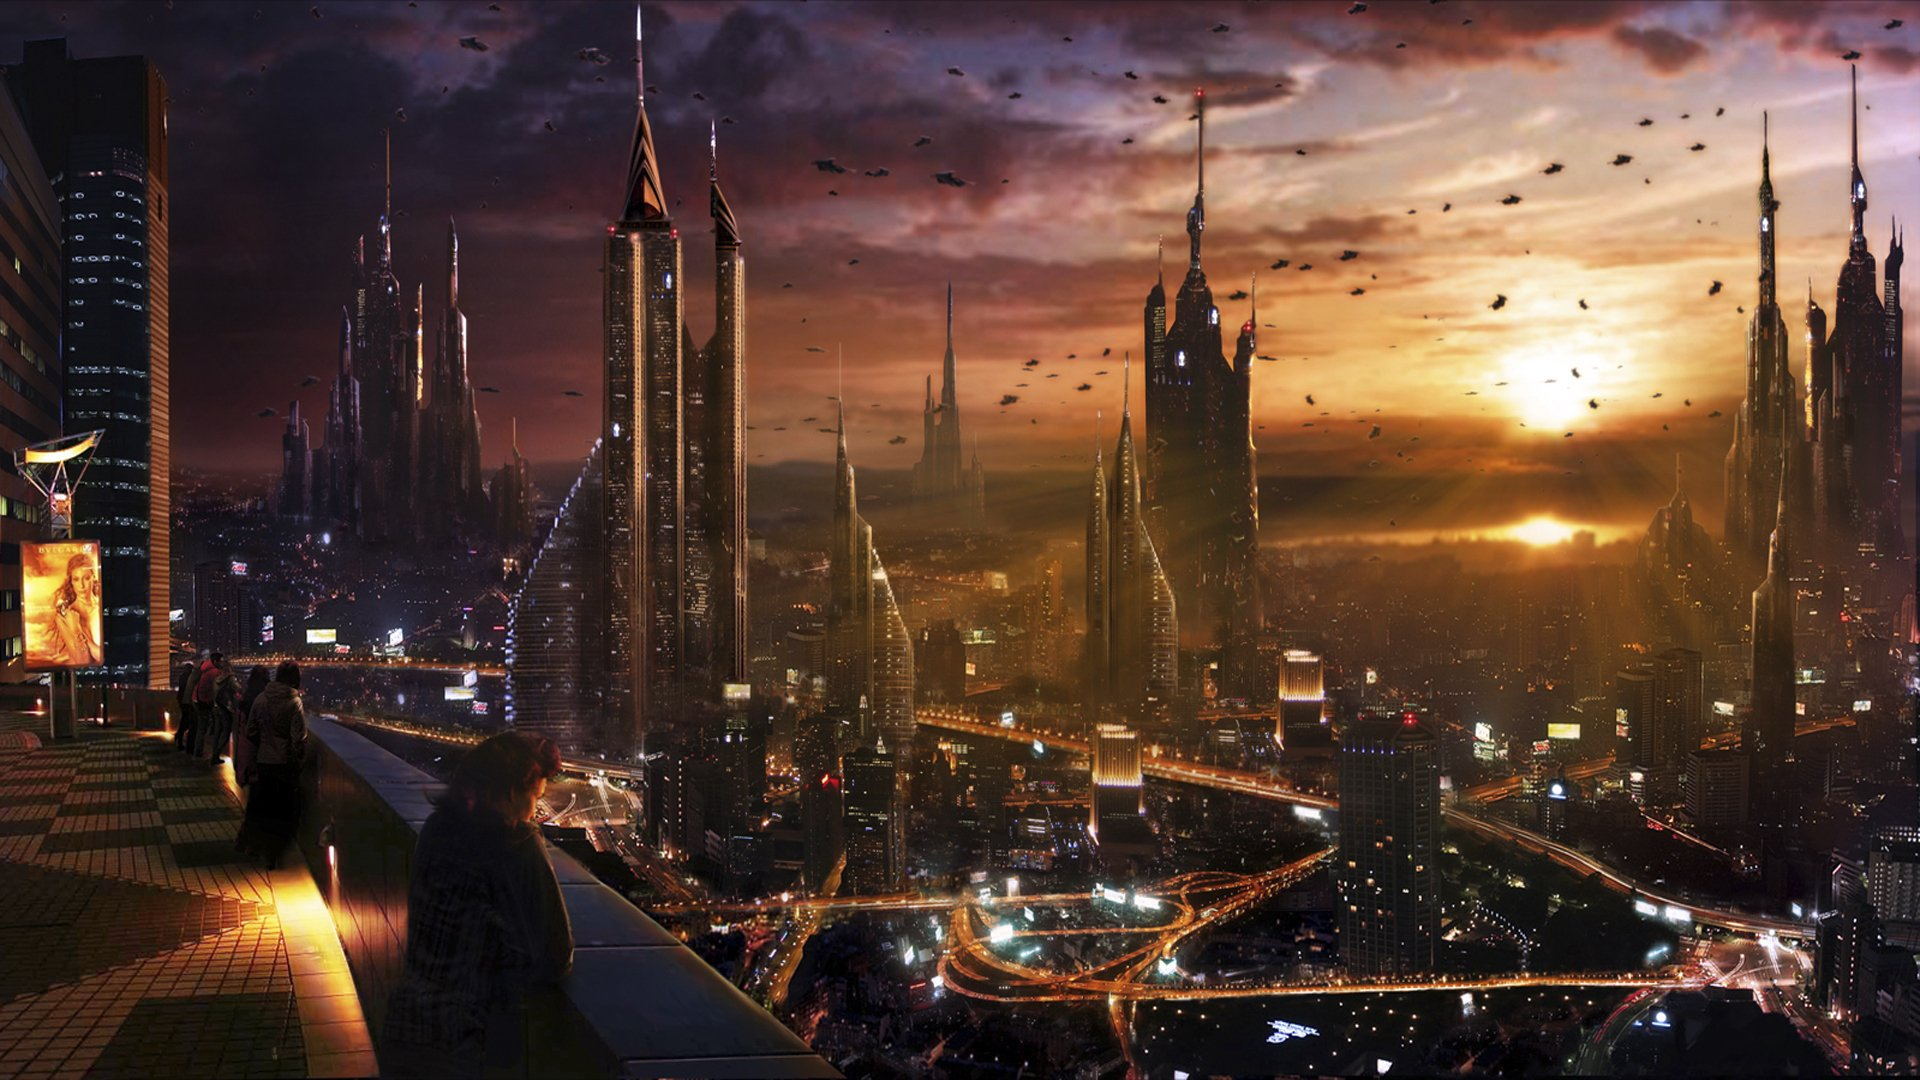 Sci Fi - City  Cityscape Wallpaper